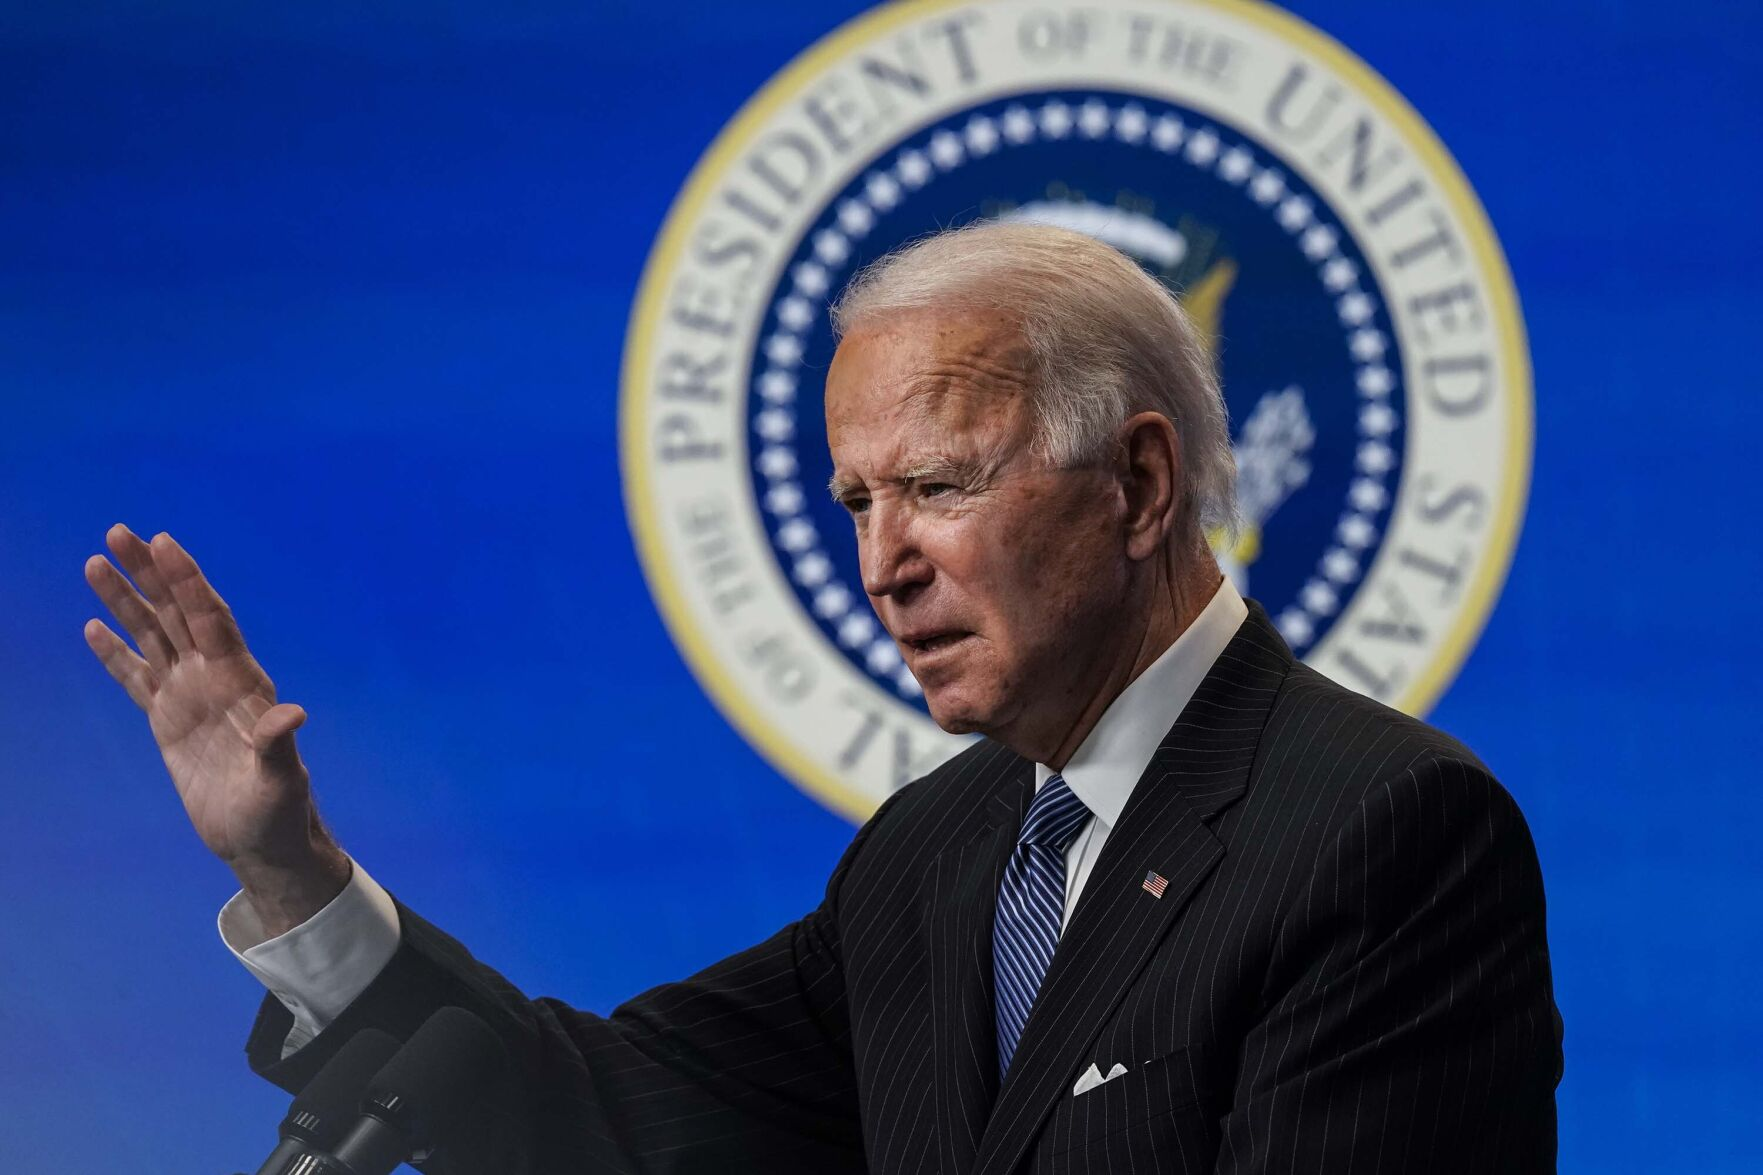 Texas judge temporarily blocks Biden's plan to halt deportations 2